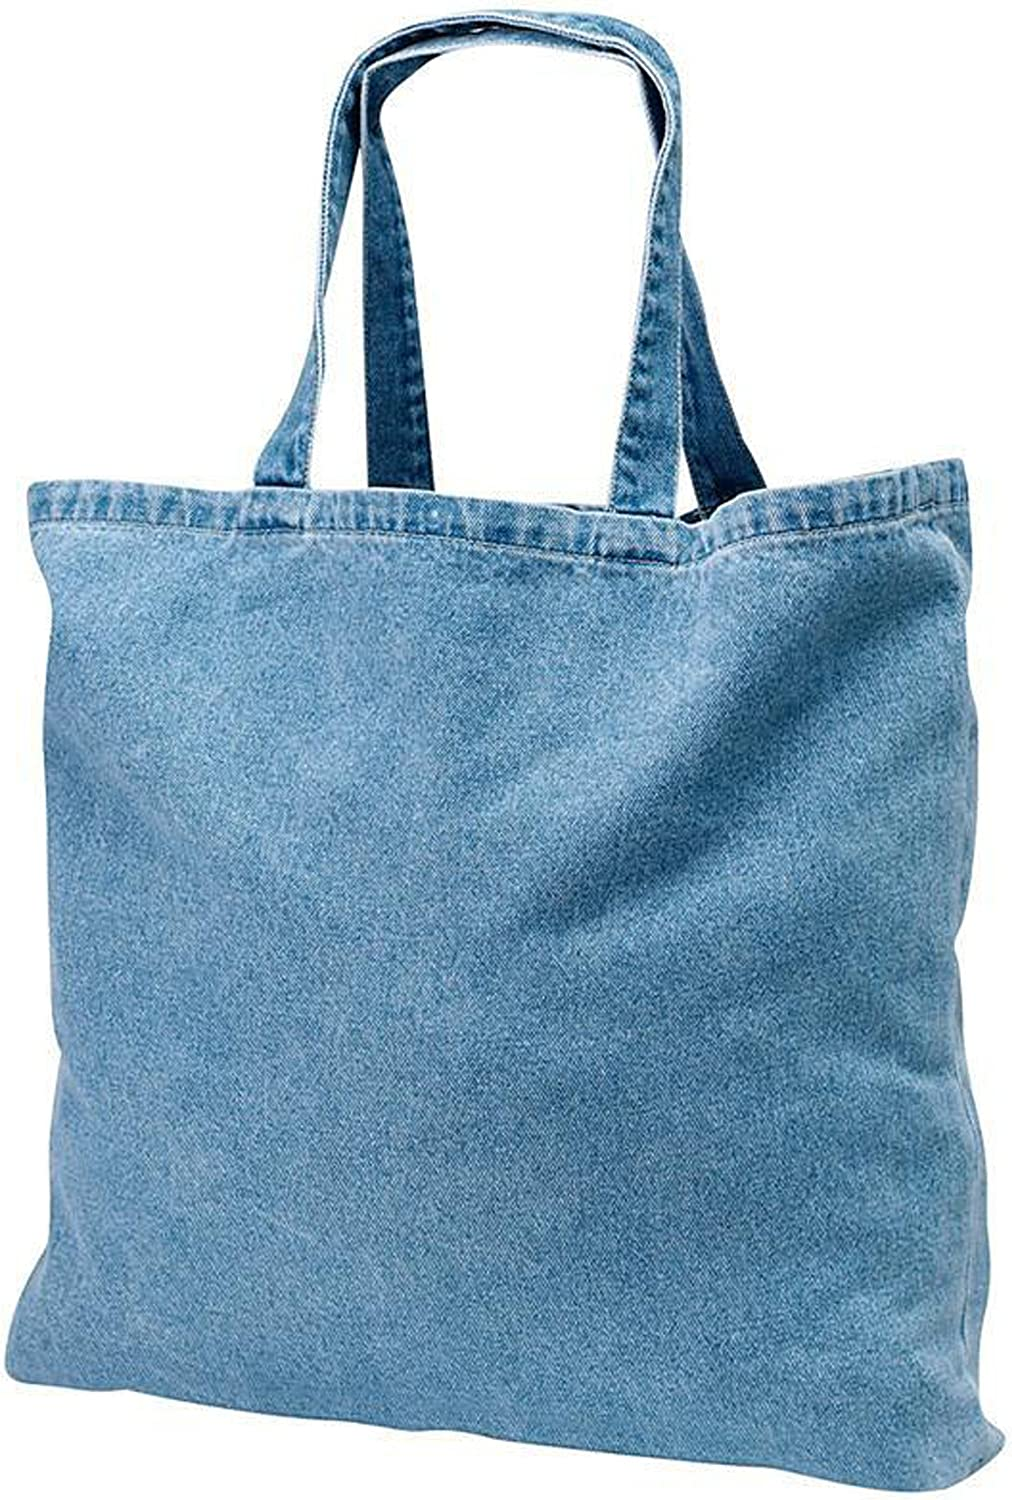 Heavy Duty Cotton Washed Denim Tote Bag